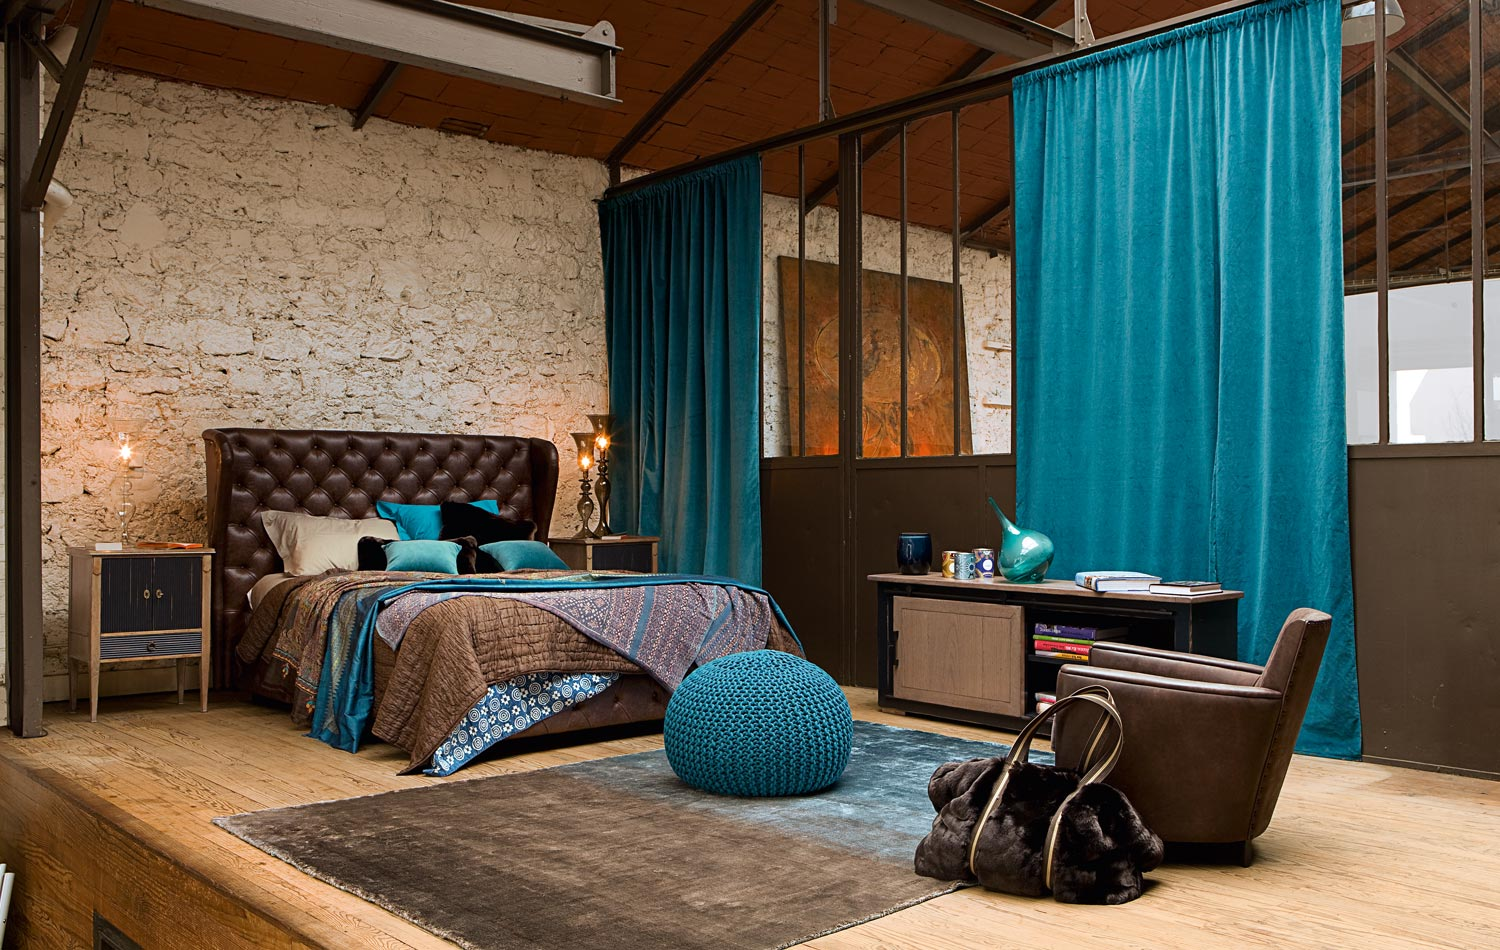 Bedroom Inspiration 20 Modern Beds by Roche Bobois  Architecture  Design